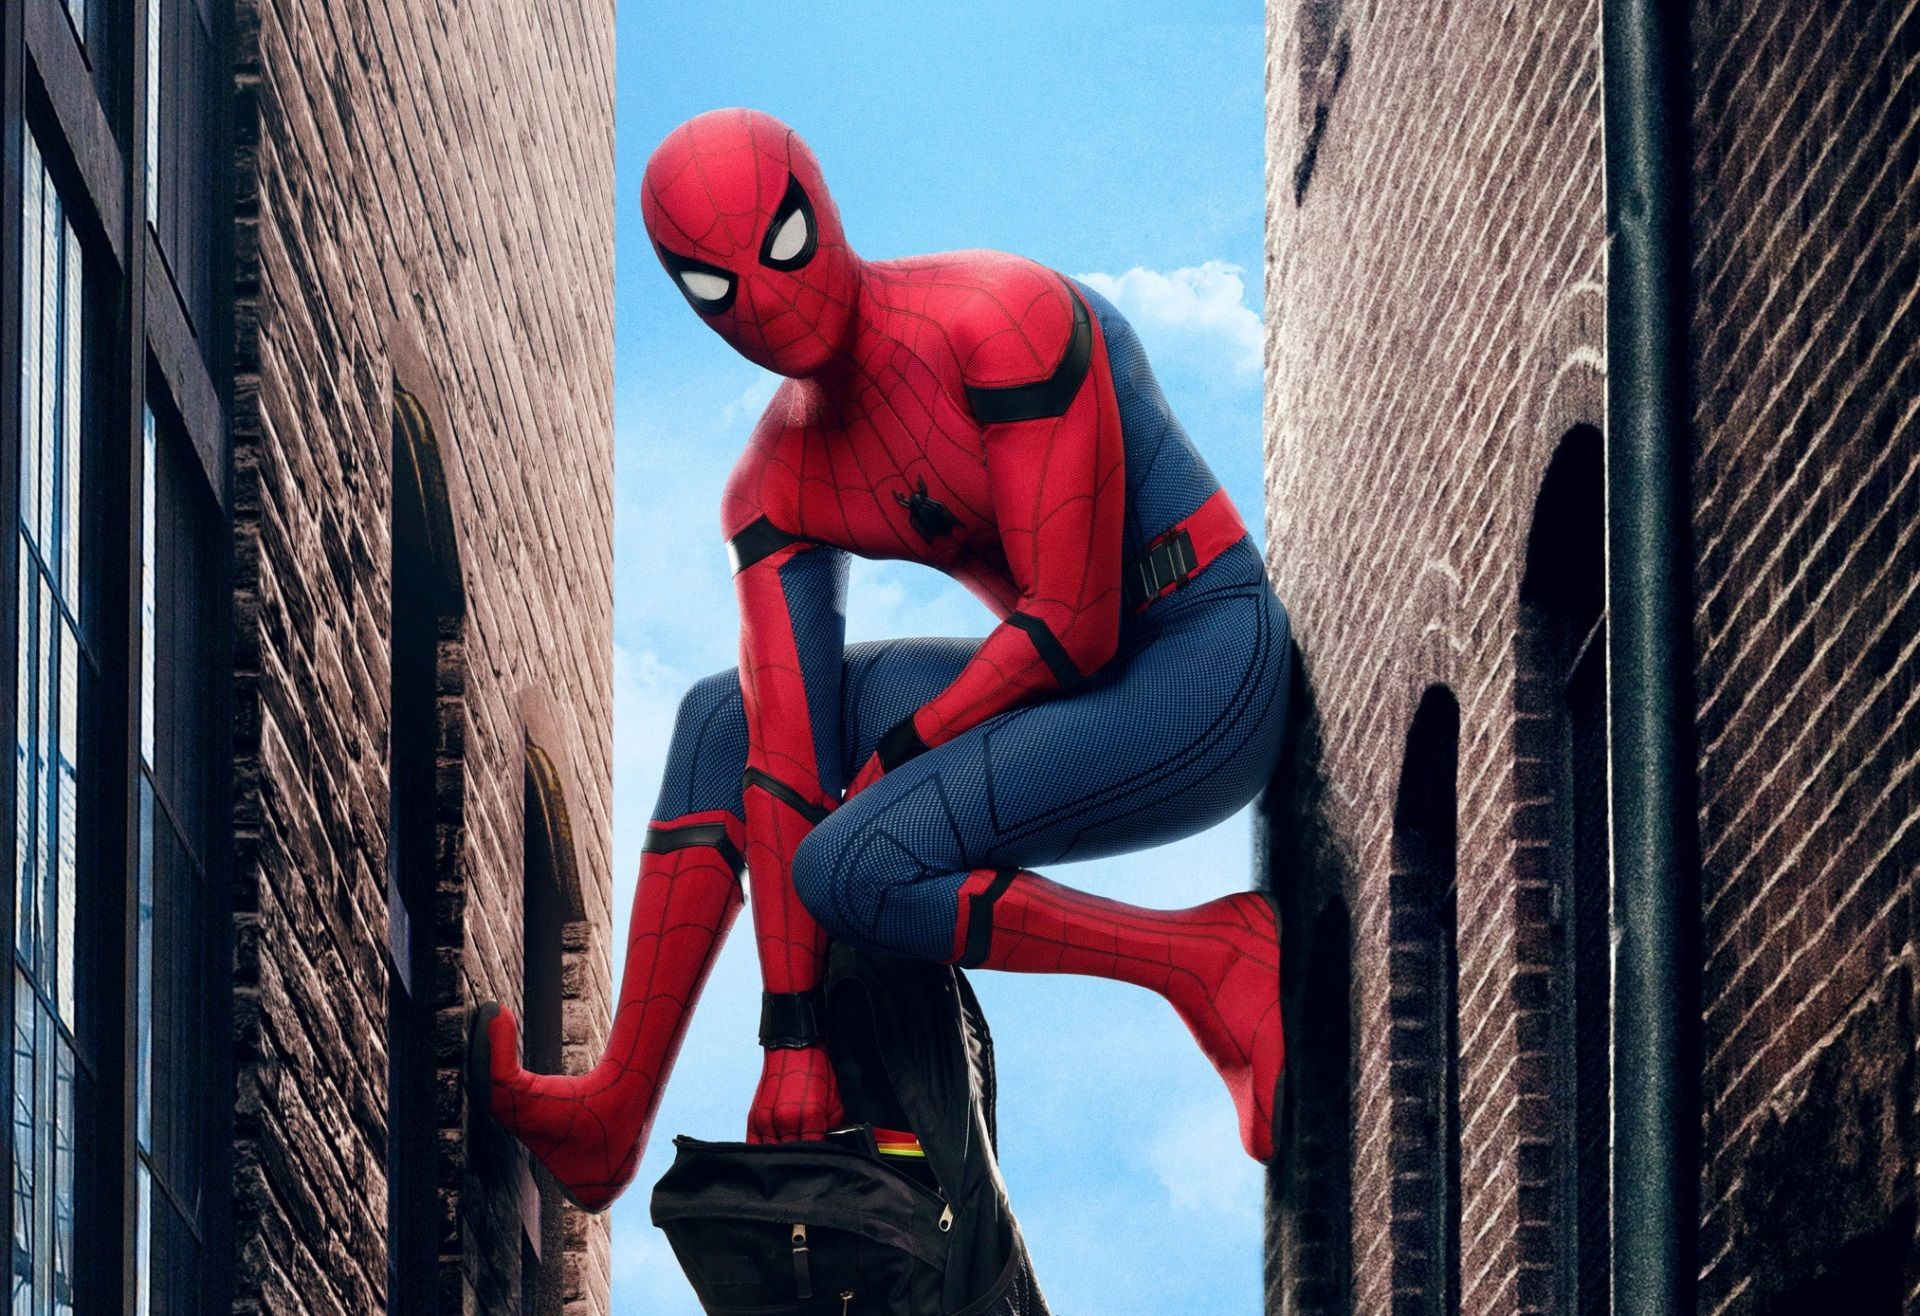 1920x1316 Spiderman Homecoming Top Wallpaper For Pc Spiderman Spiderman Homecoming Movie Spiderman Homecoming